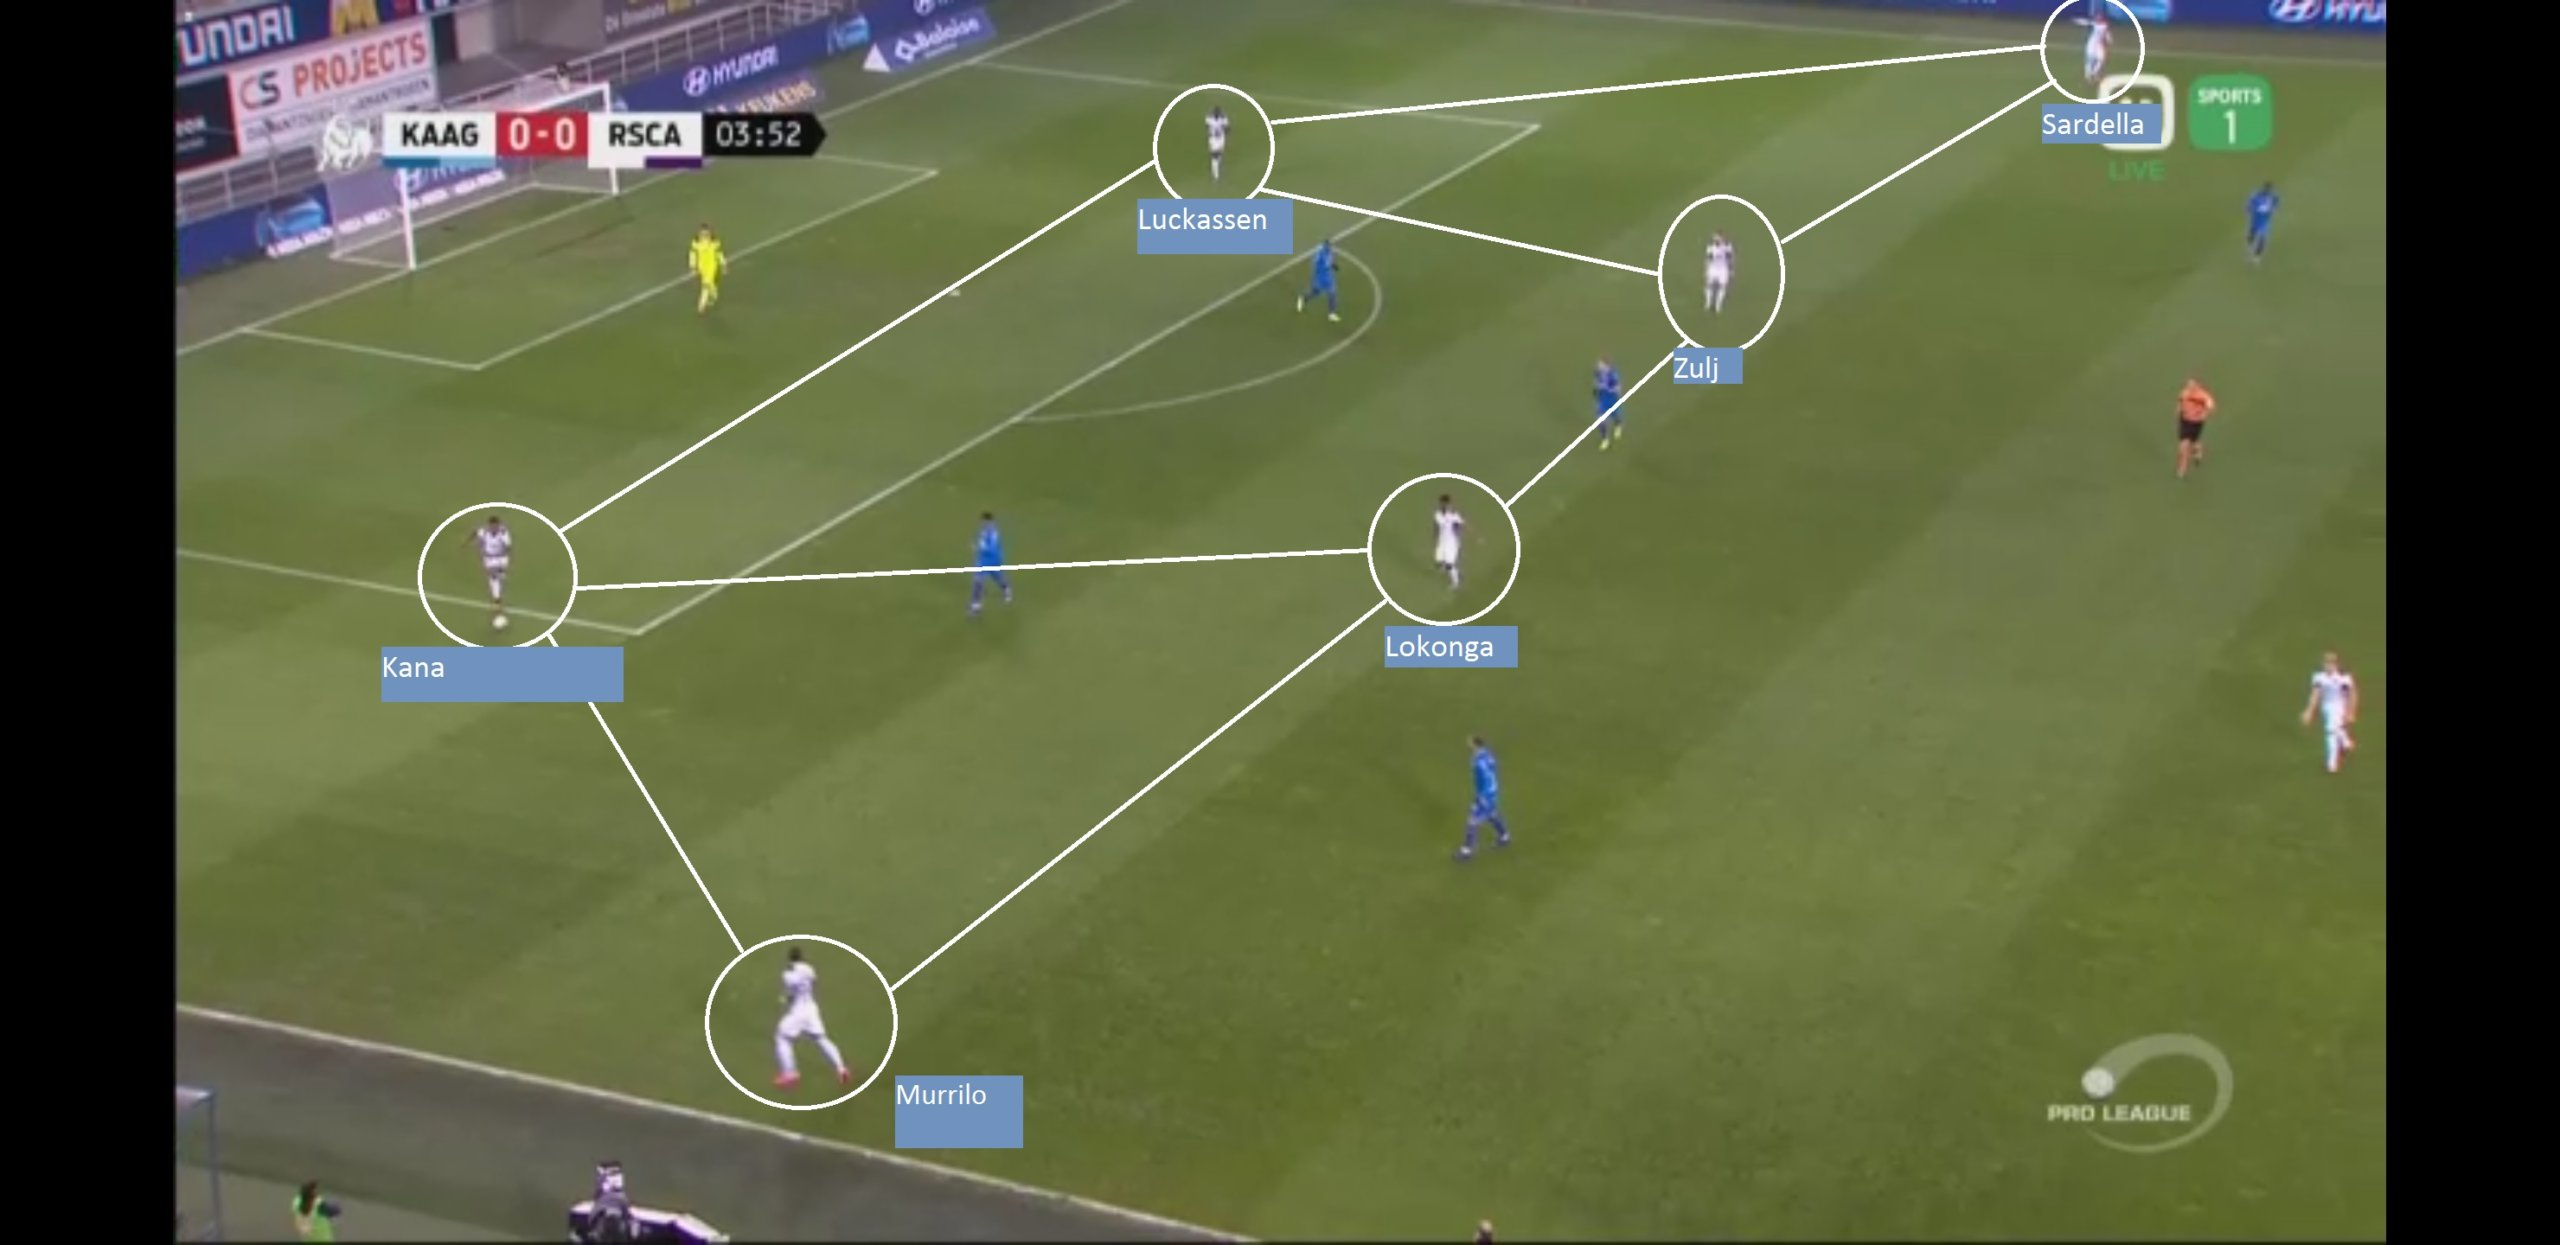 Jupiler Pro League 2019/2020: Gent vs Anderlecht - tactical analysis - tactics